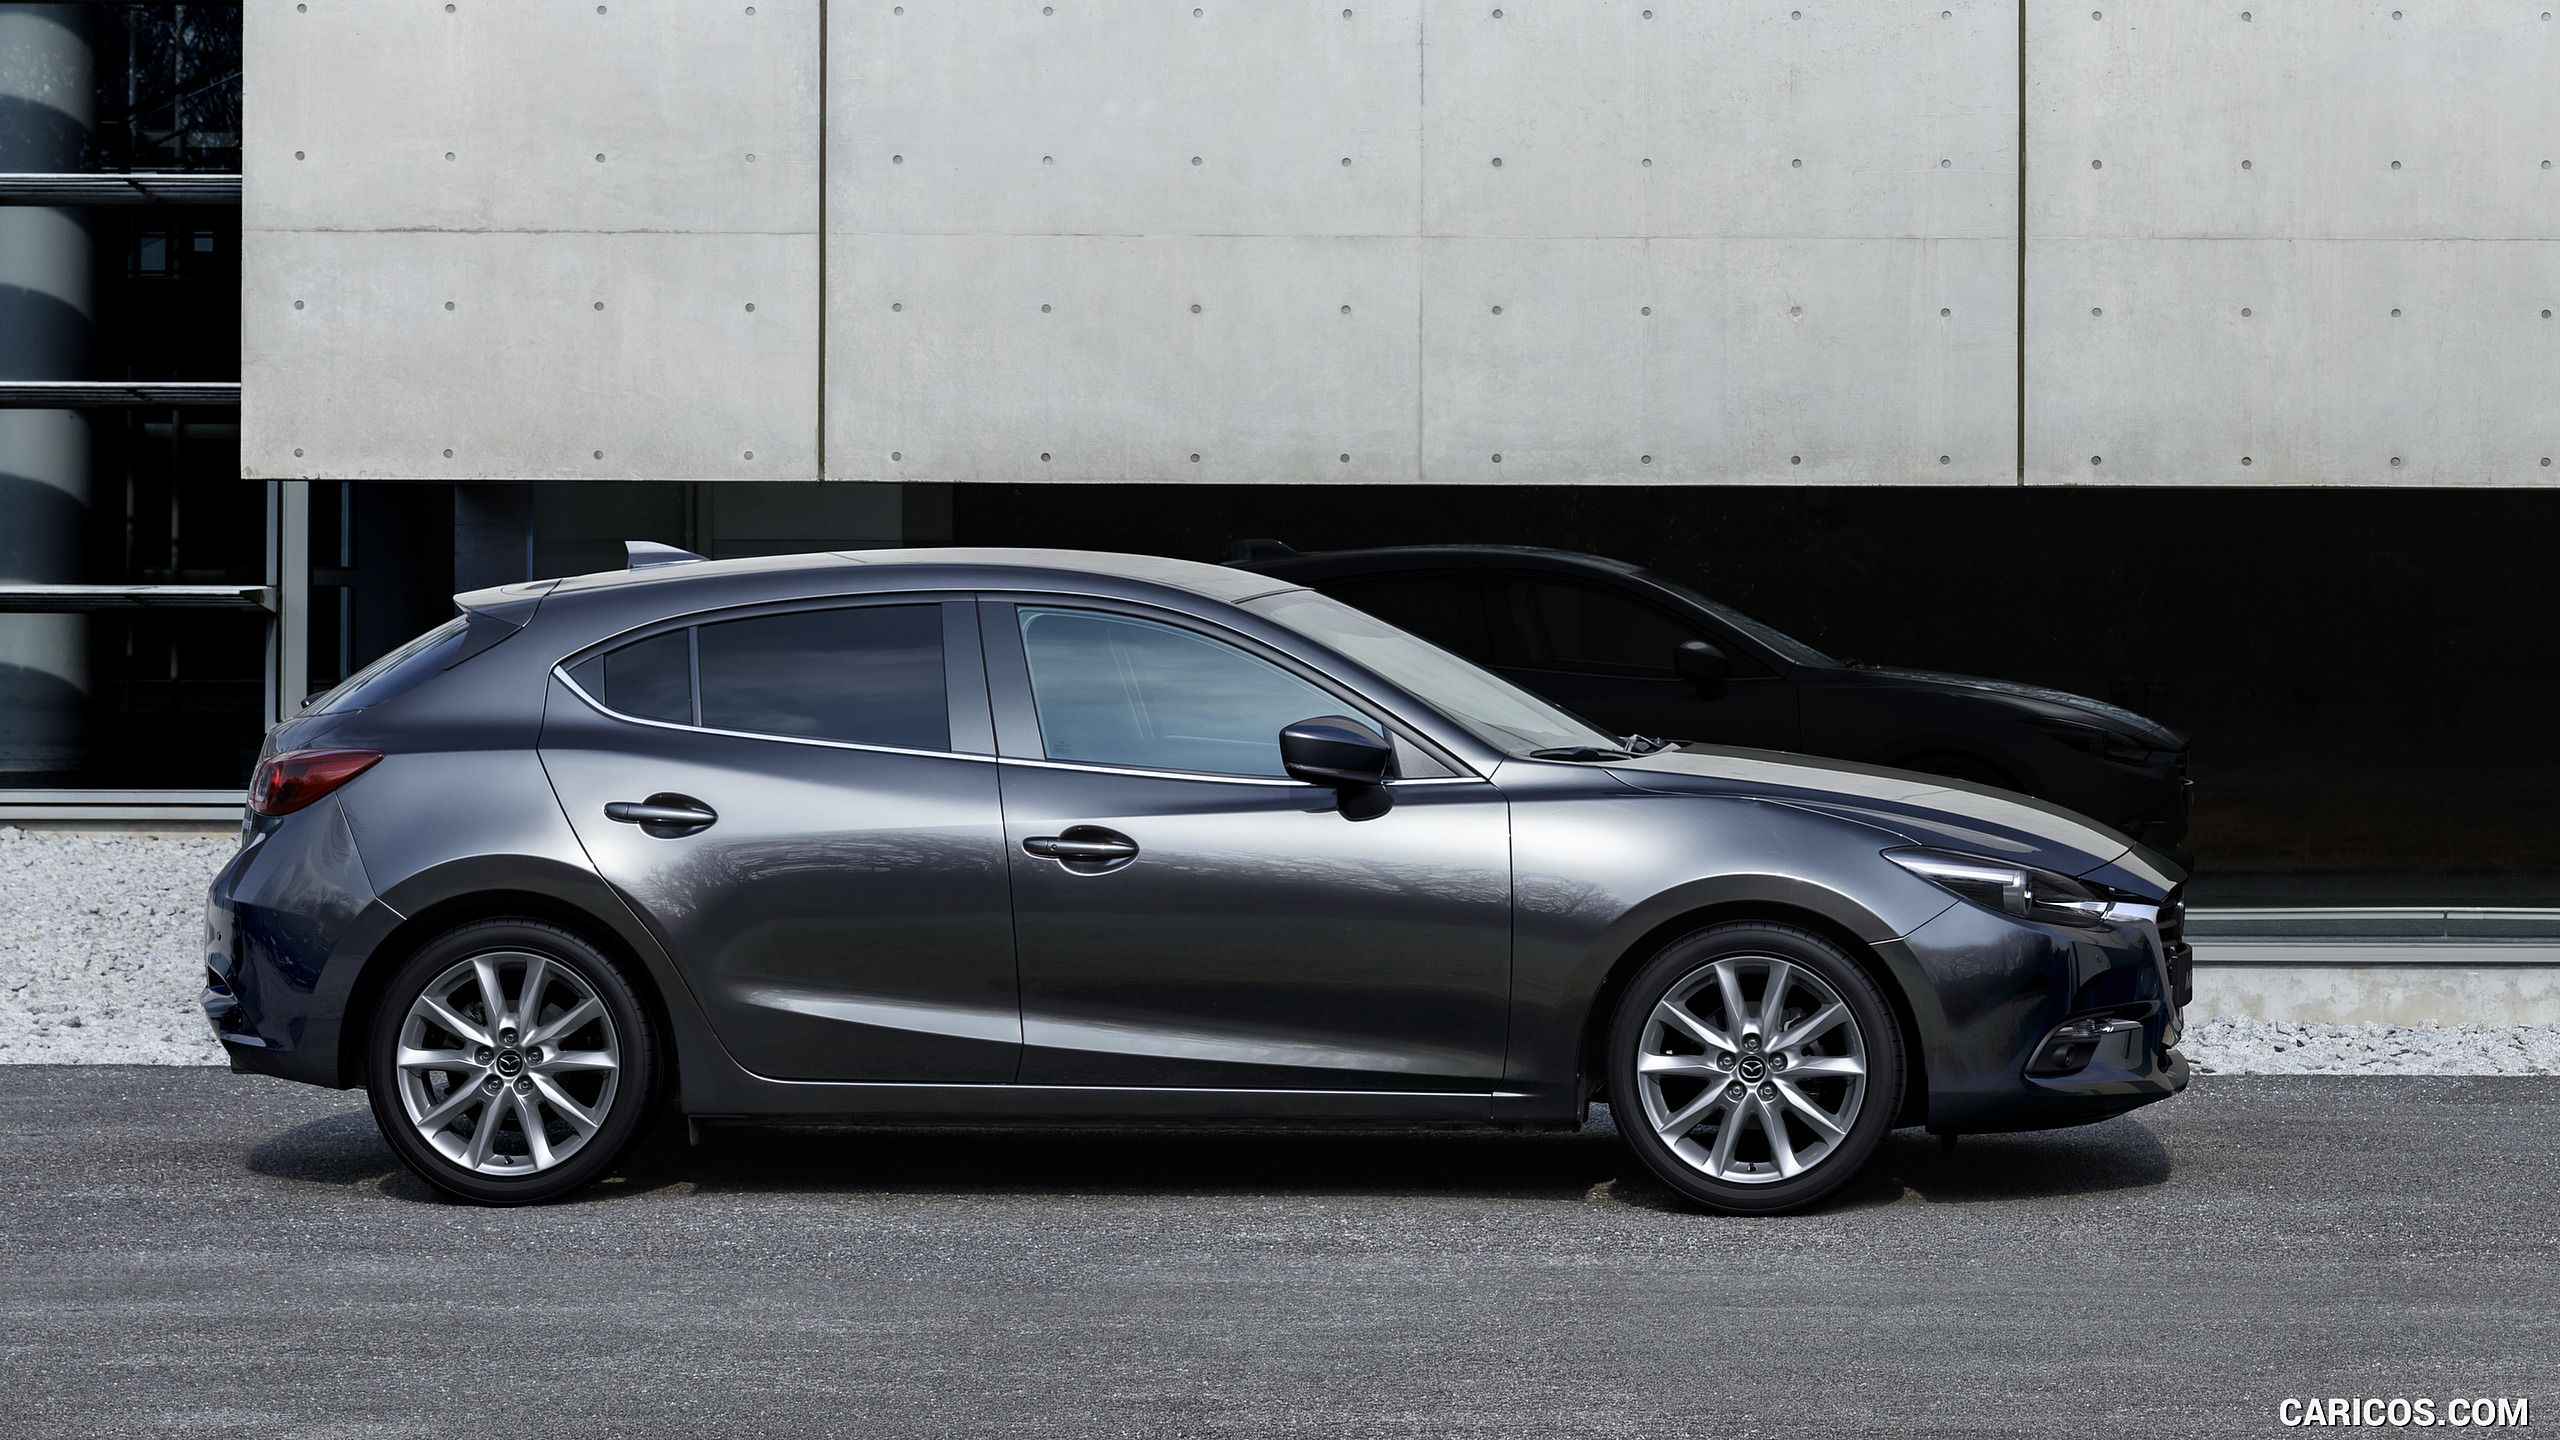 2017 Mazda 3 5 Door Hatchback Wallpaper Mazda3 Pinterest Mazda